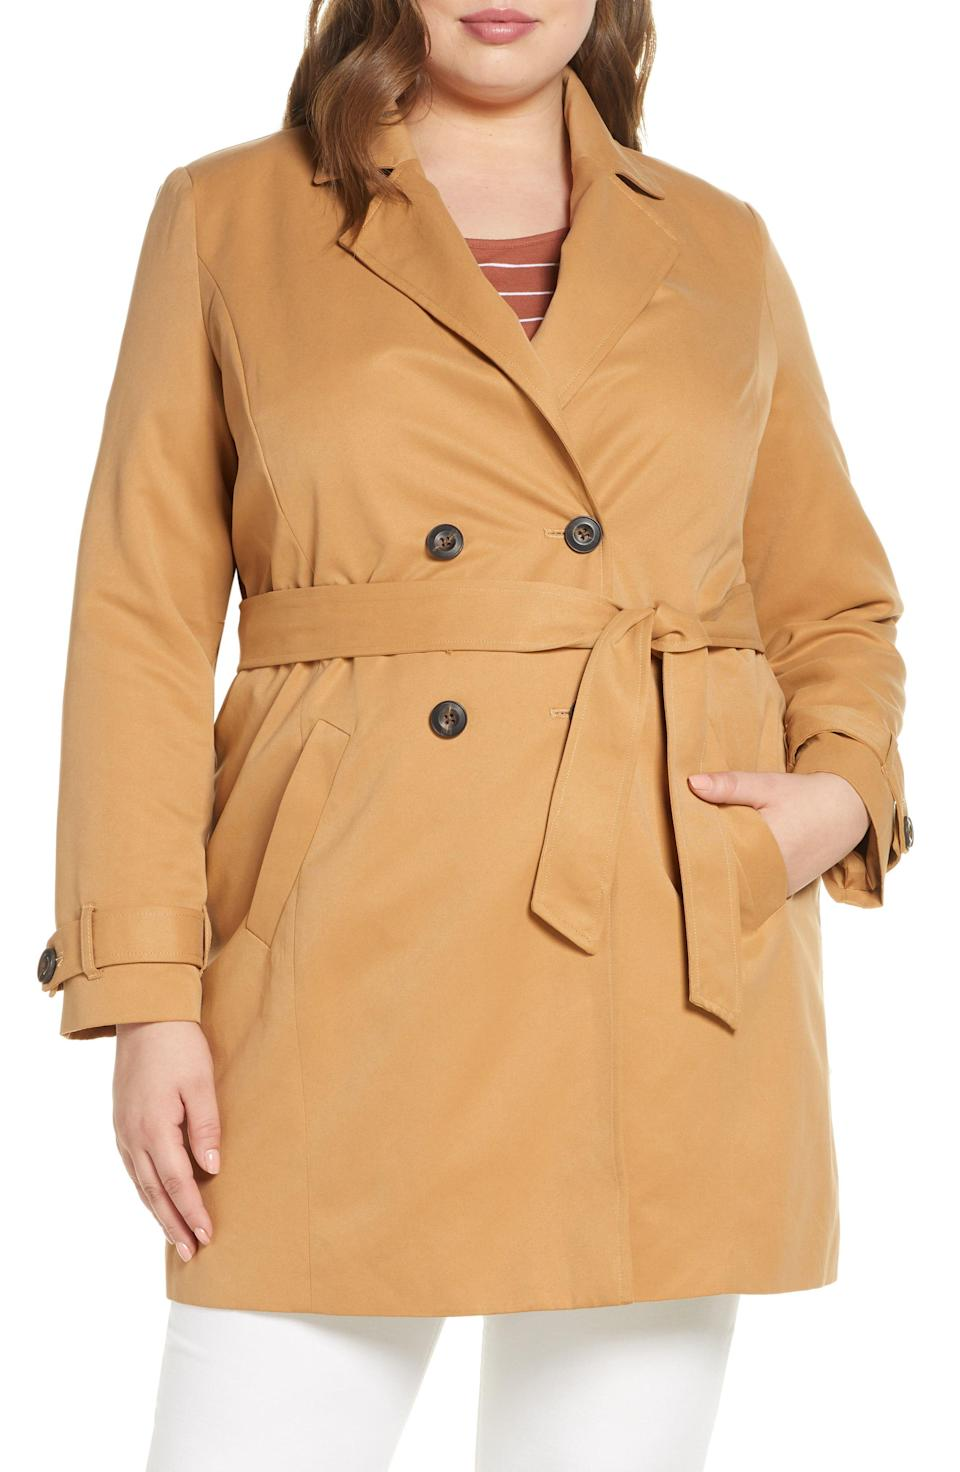 """<p><strong>VERO MODA</strong></p><p>nordstrom.com</p><p><strong>$59.25</strong></p><p><a href=""""https://go.redirectingat.com?id=74968X1596630&url=https%3A%2F%2Fwww.nordstrom.com%2Fs%2Fvero-moda-curve-tie-waist-jacket-plus-size%2F5573098&sref=https%3A%2F%2Fwww.oprahmag.com%2Fstyle%2Fg33266496%2Fplus-size-coats%2F"""" rel=""""nofollow noopener"""" target=""""_blank"""" data-ylk=""""slk:SHOP NOW"""" class=""""link rapid-noclick-resp"""">SHOP NOW</a></p><p>This double-breasted trench coat ticks all the boxes: It's easy, elegant, and goes with practically everything. Plus, you can wear it with the belt to emphasize your curves or you can remove the belt for a more relaxed feel (bonus: you don't have to worry about wrinkles).</p>"""